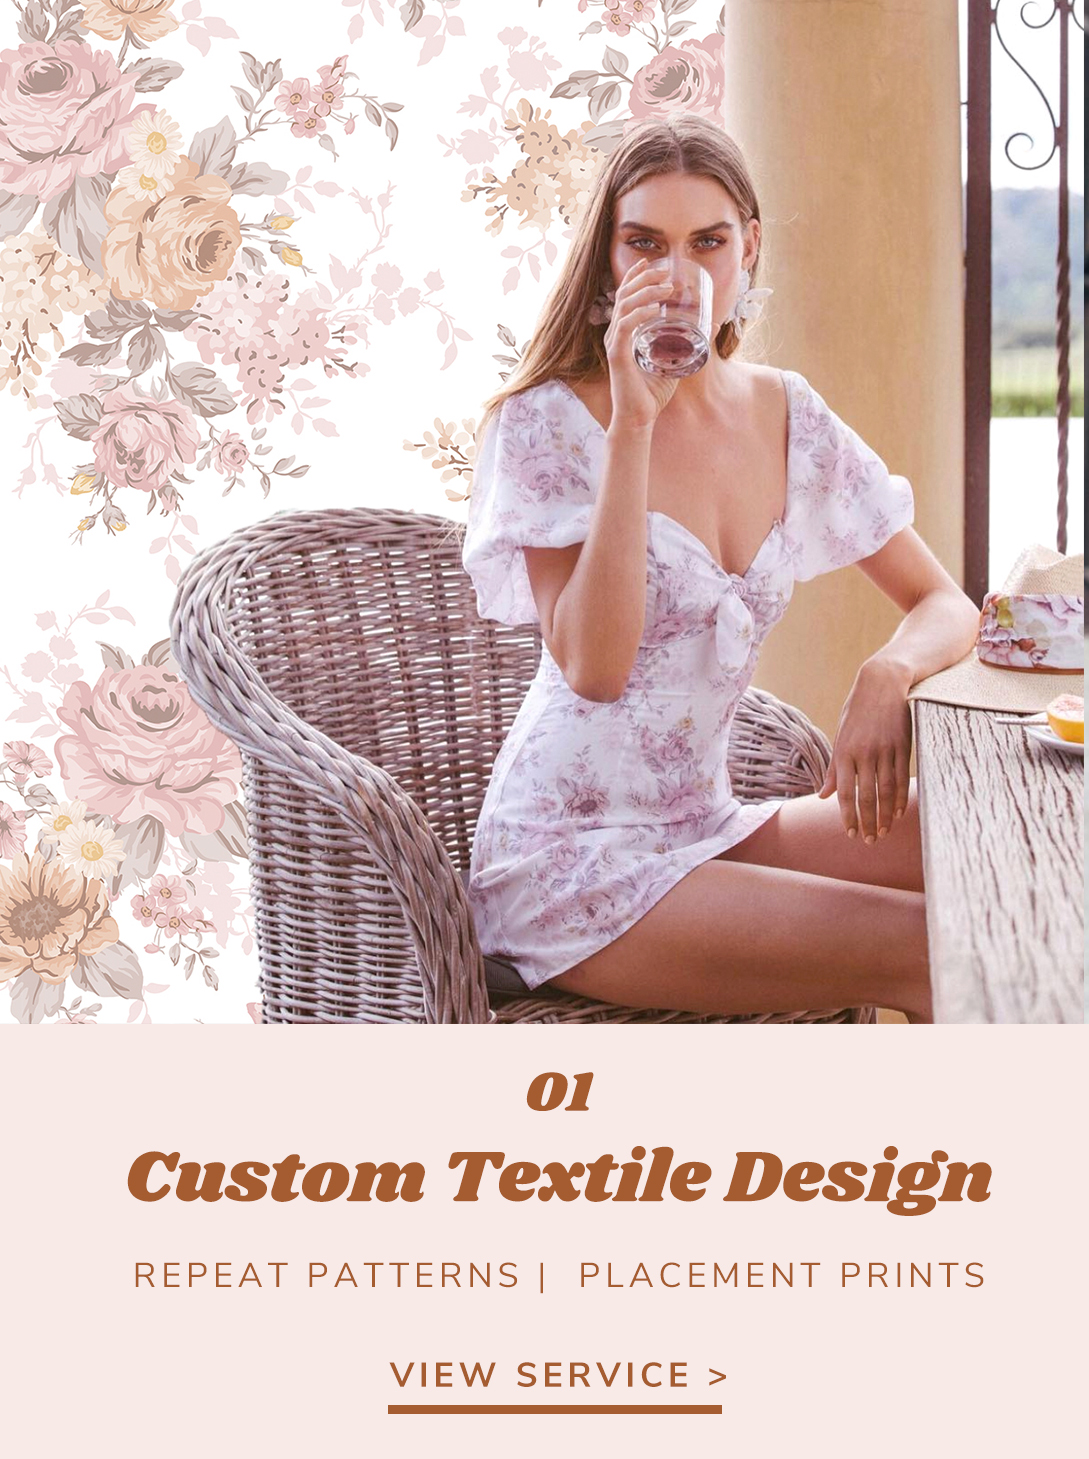 CUSTOM TEXTILE DESIGN SERVICES.jpg